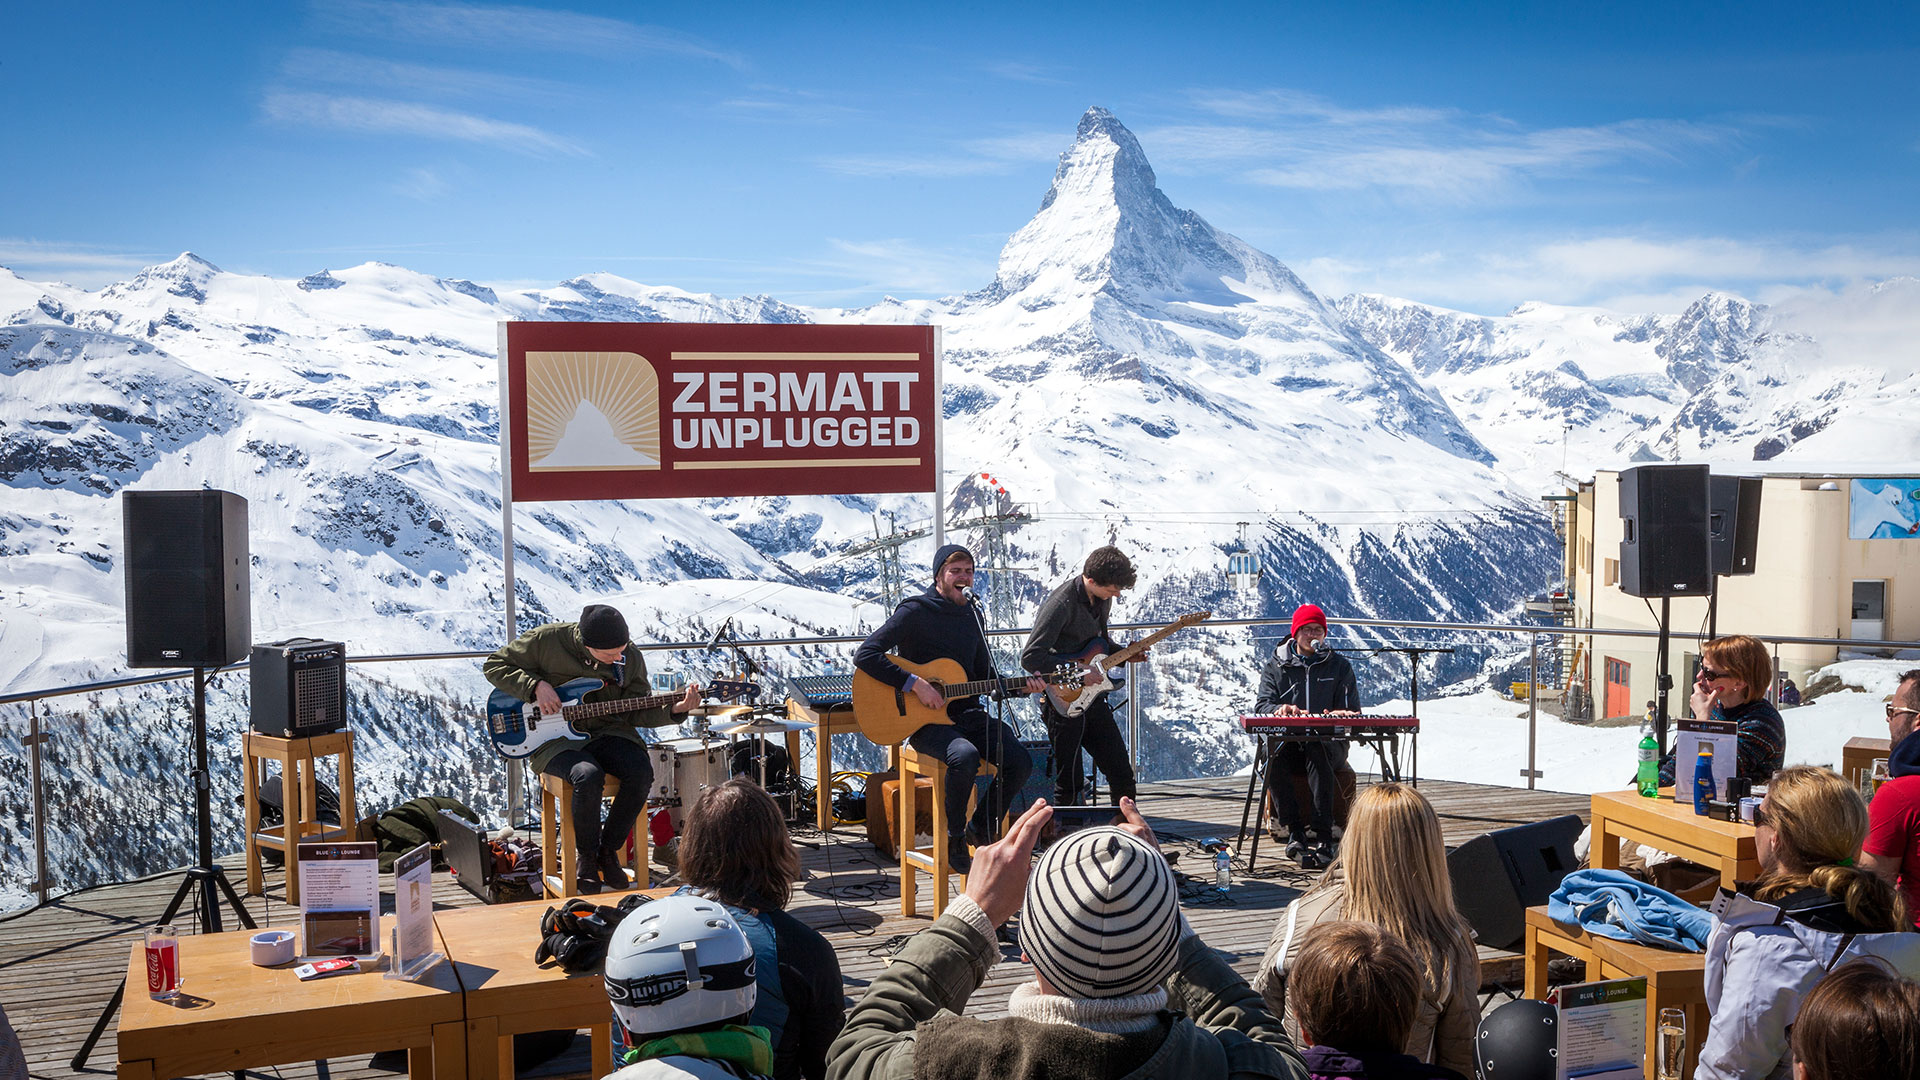 zermatt-unplugged